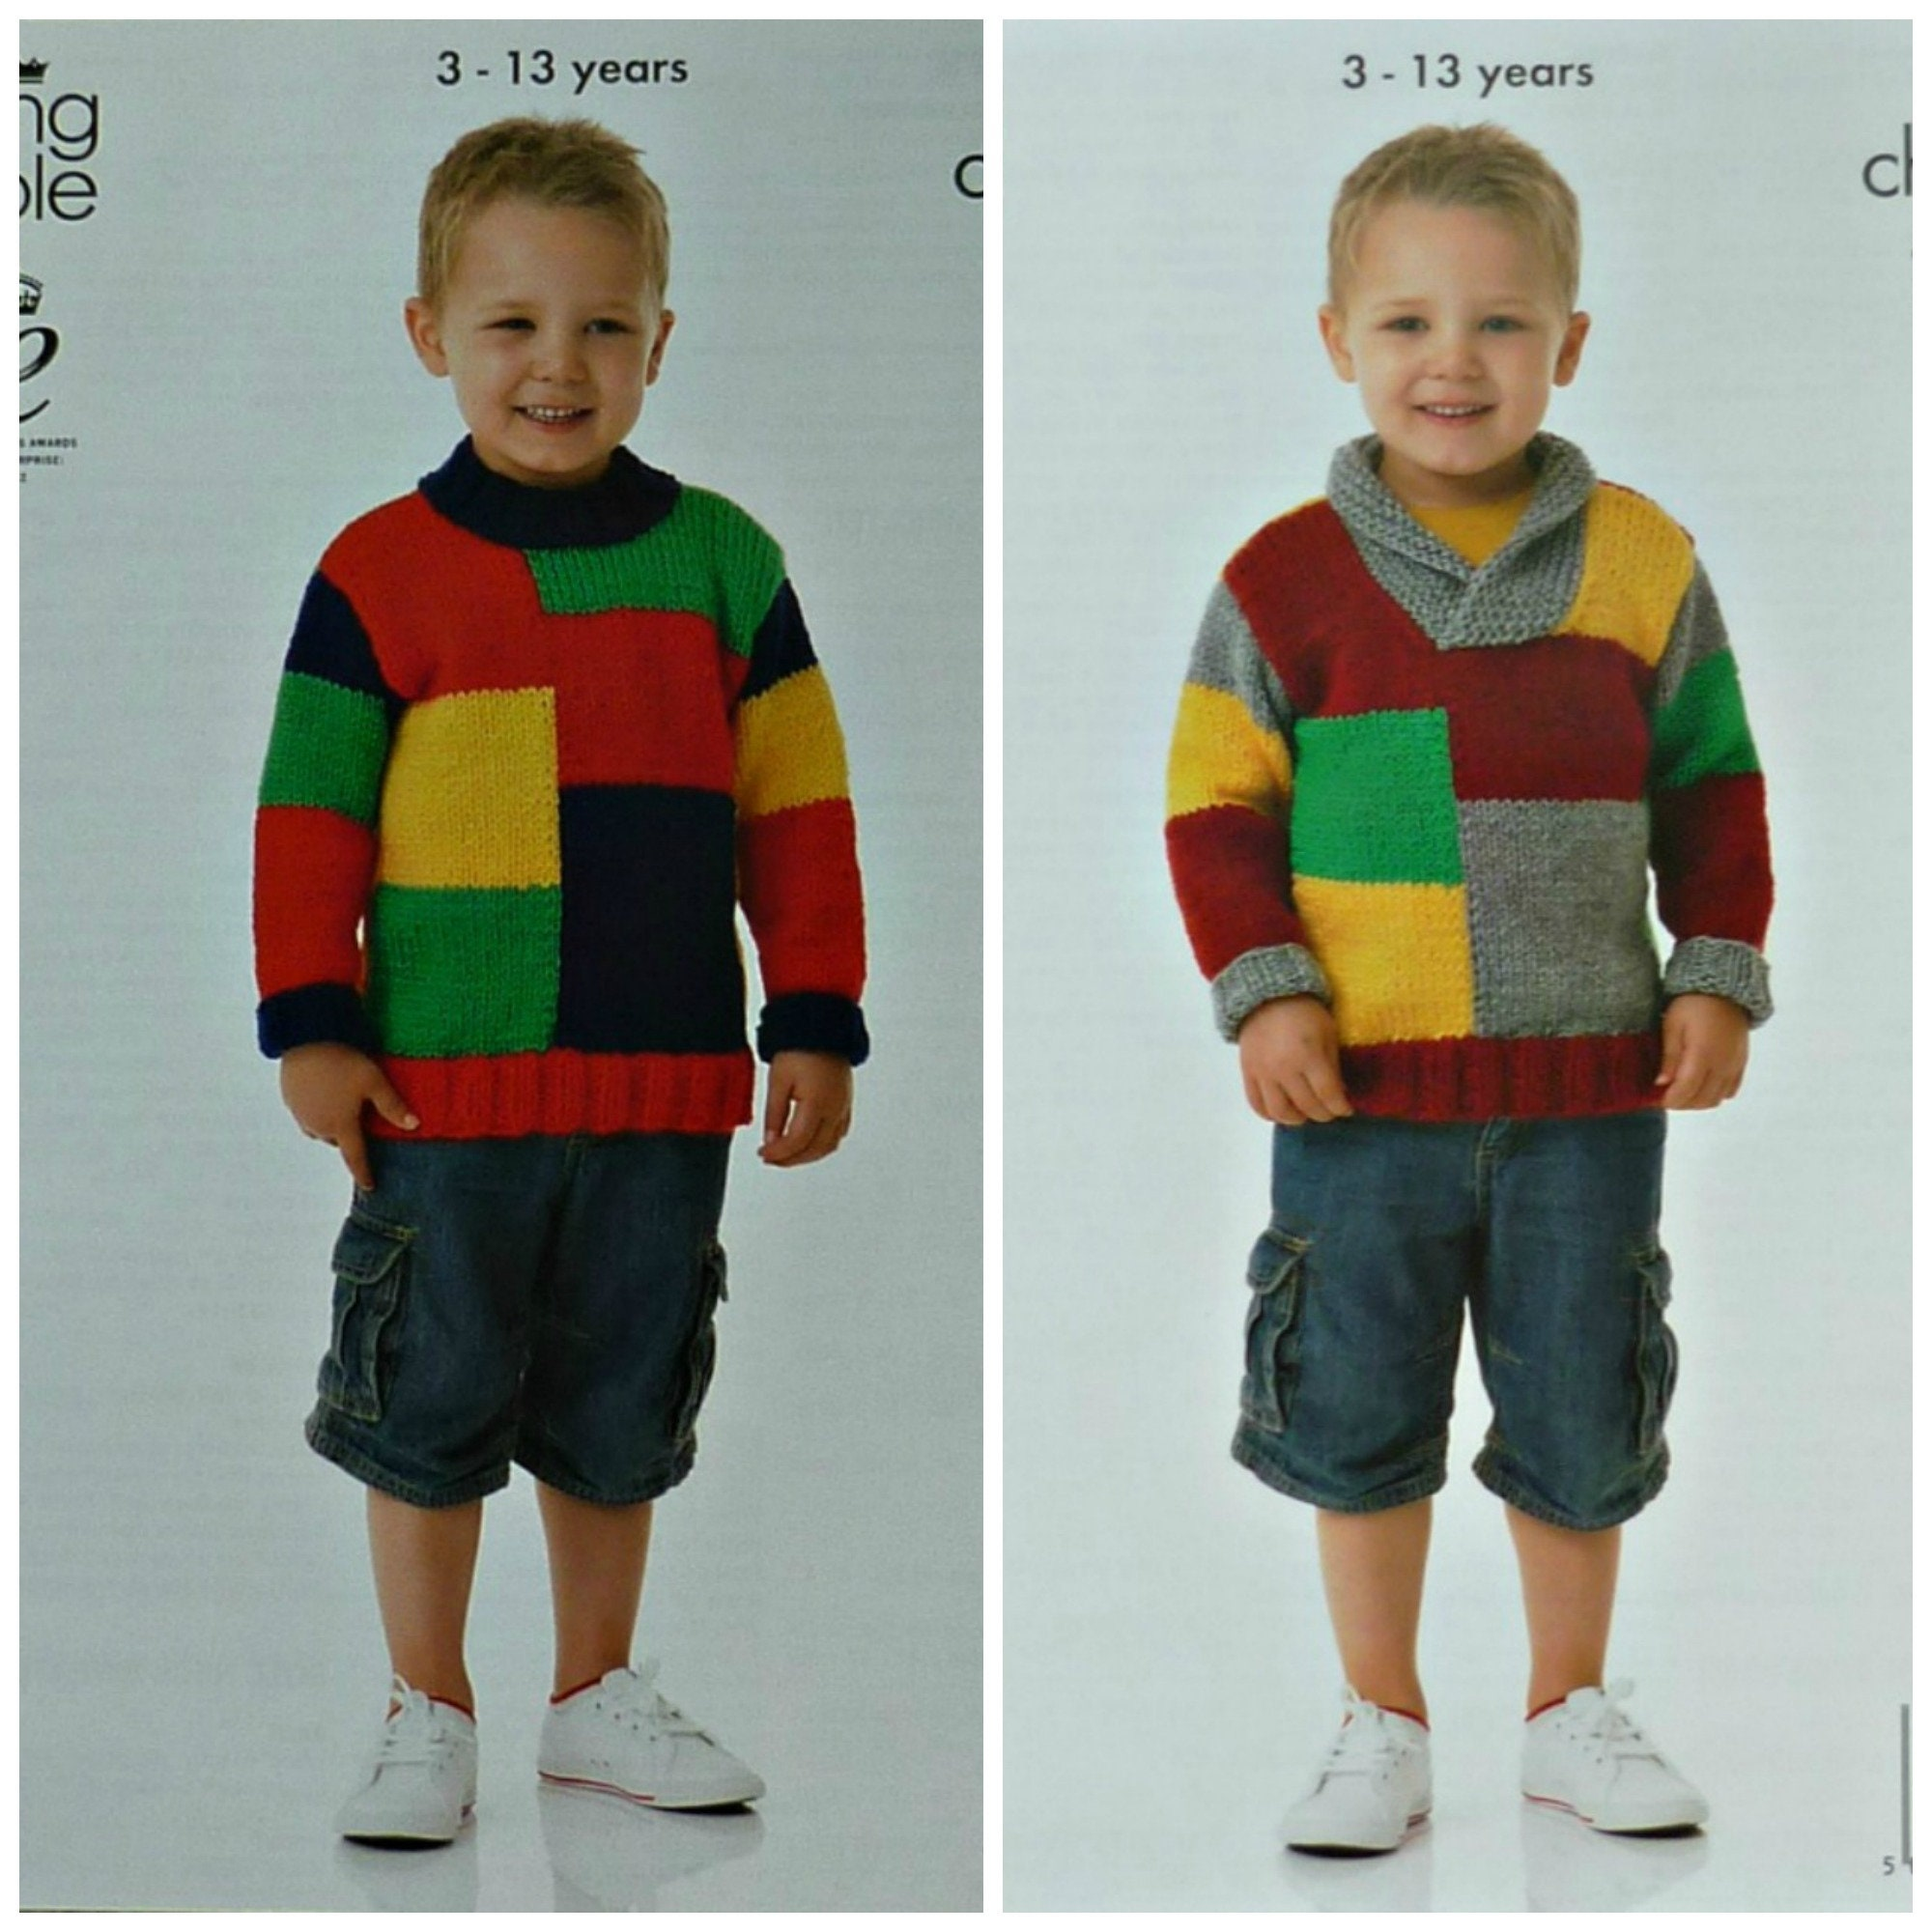 0bb58cf8b431 Boys Knitting Pattern K3856 Childrens Long Sleeve Round or Roll ...